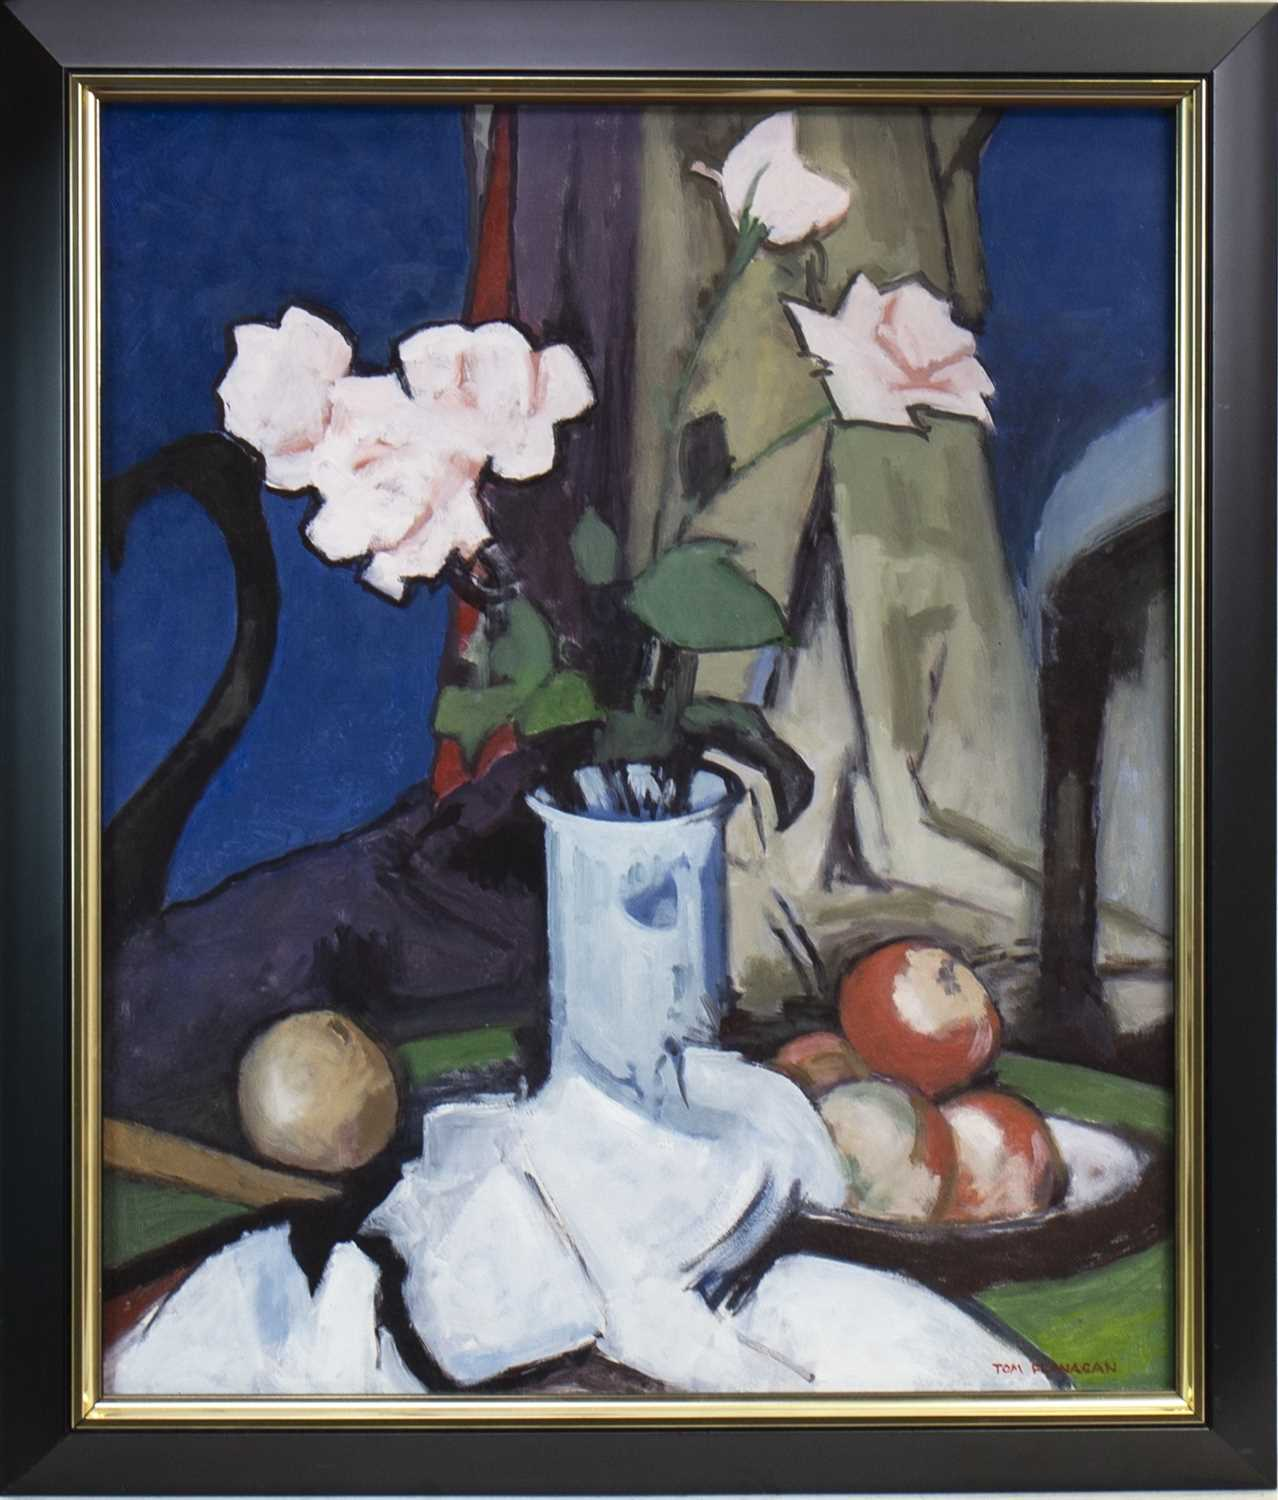 Lot 531-STILL LIFE WITH PINK ROSES, AN OIL BY TOM FLANAGAN